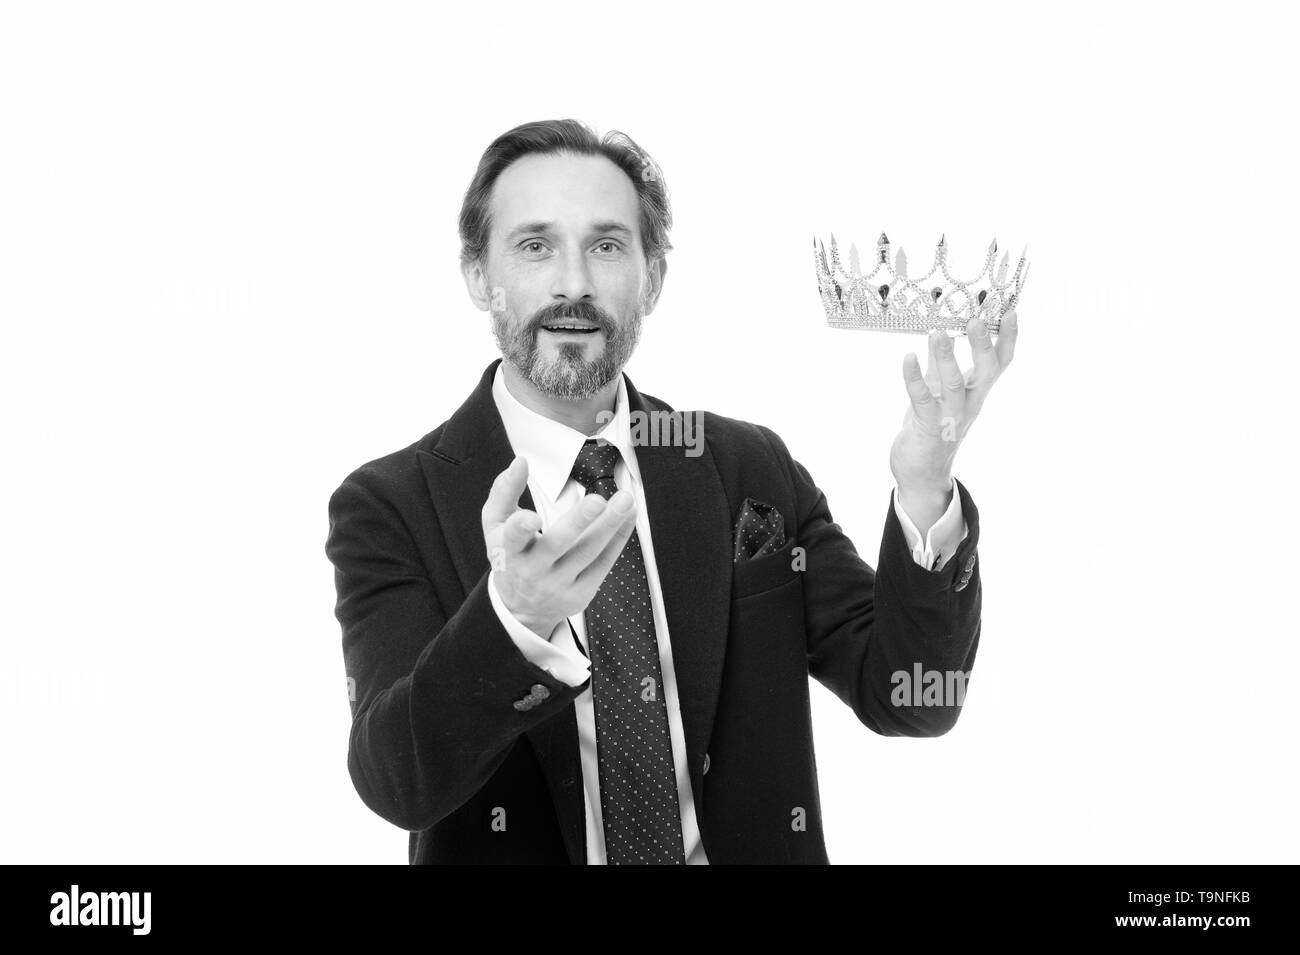 Keeper of the jewel. Achieving success in business. Business king. Mature businessman holding crown. Senior man representing power and triumph. King o Stock Photo